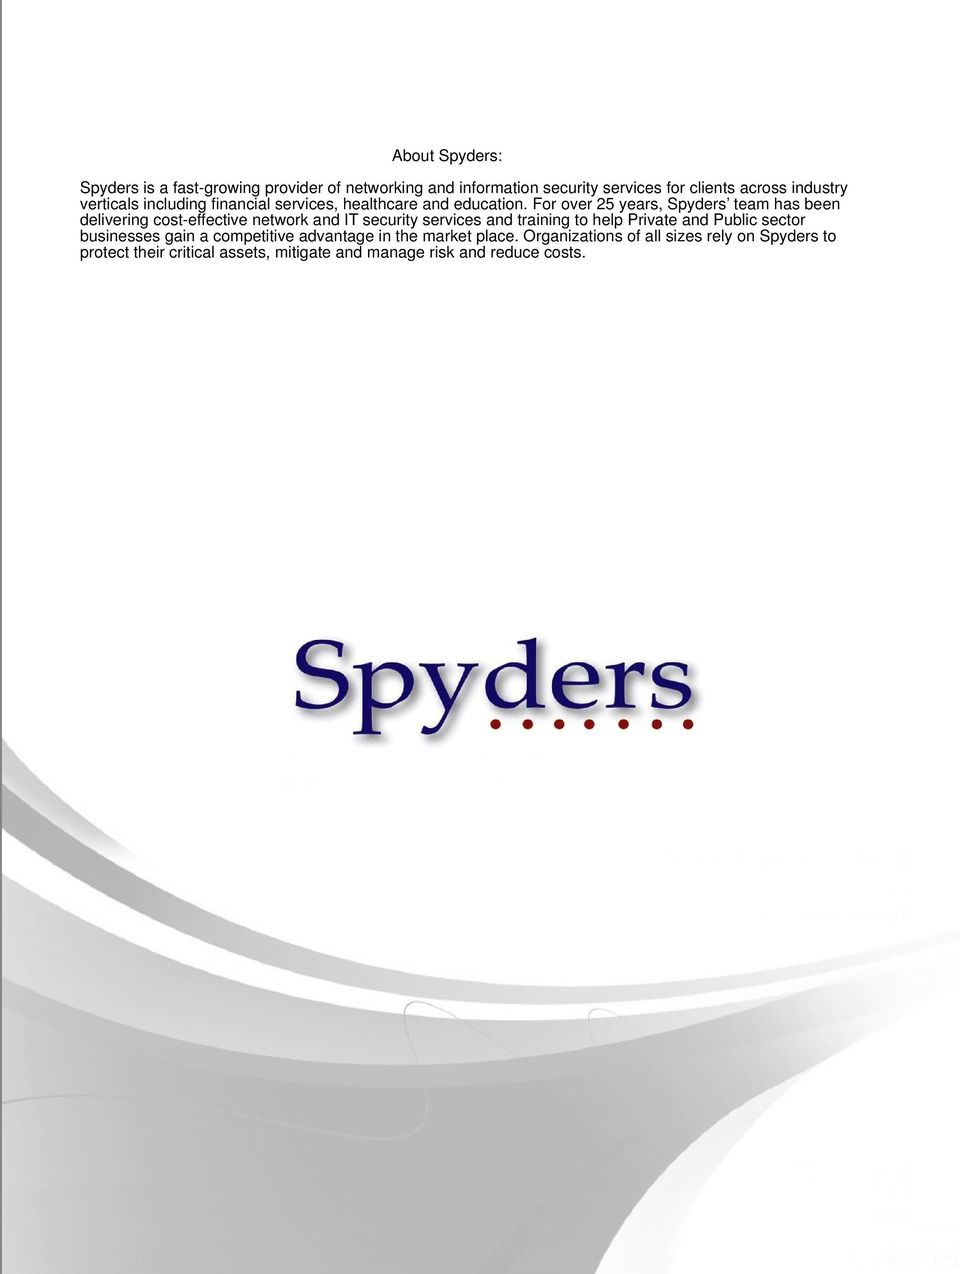 For over 25 years, Spyders team has been delivering cost-effective network and IT security services and training to help Private